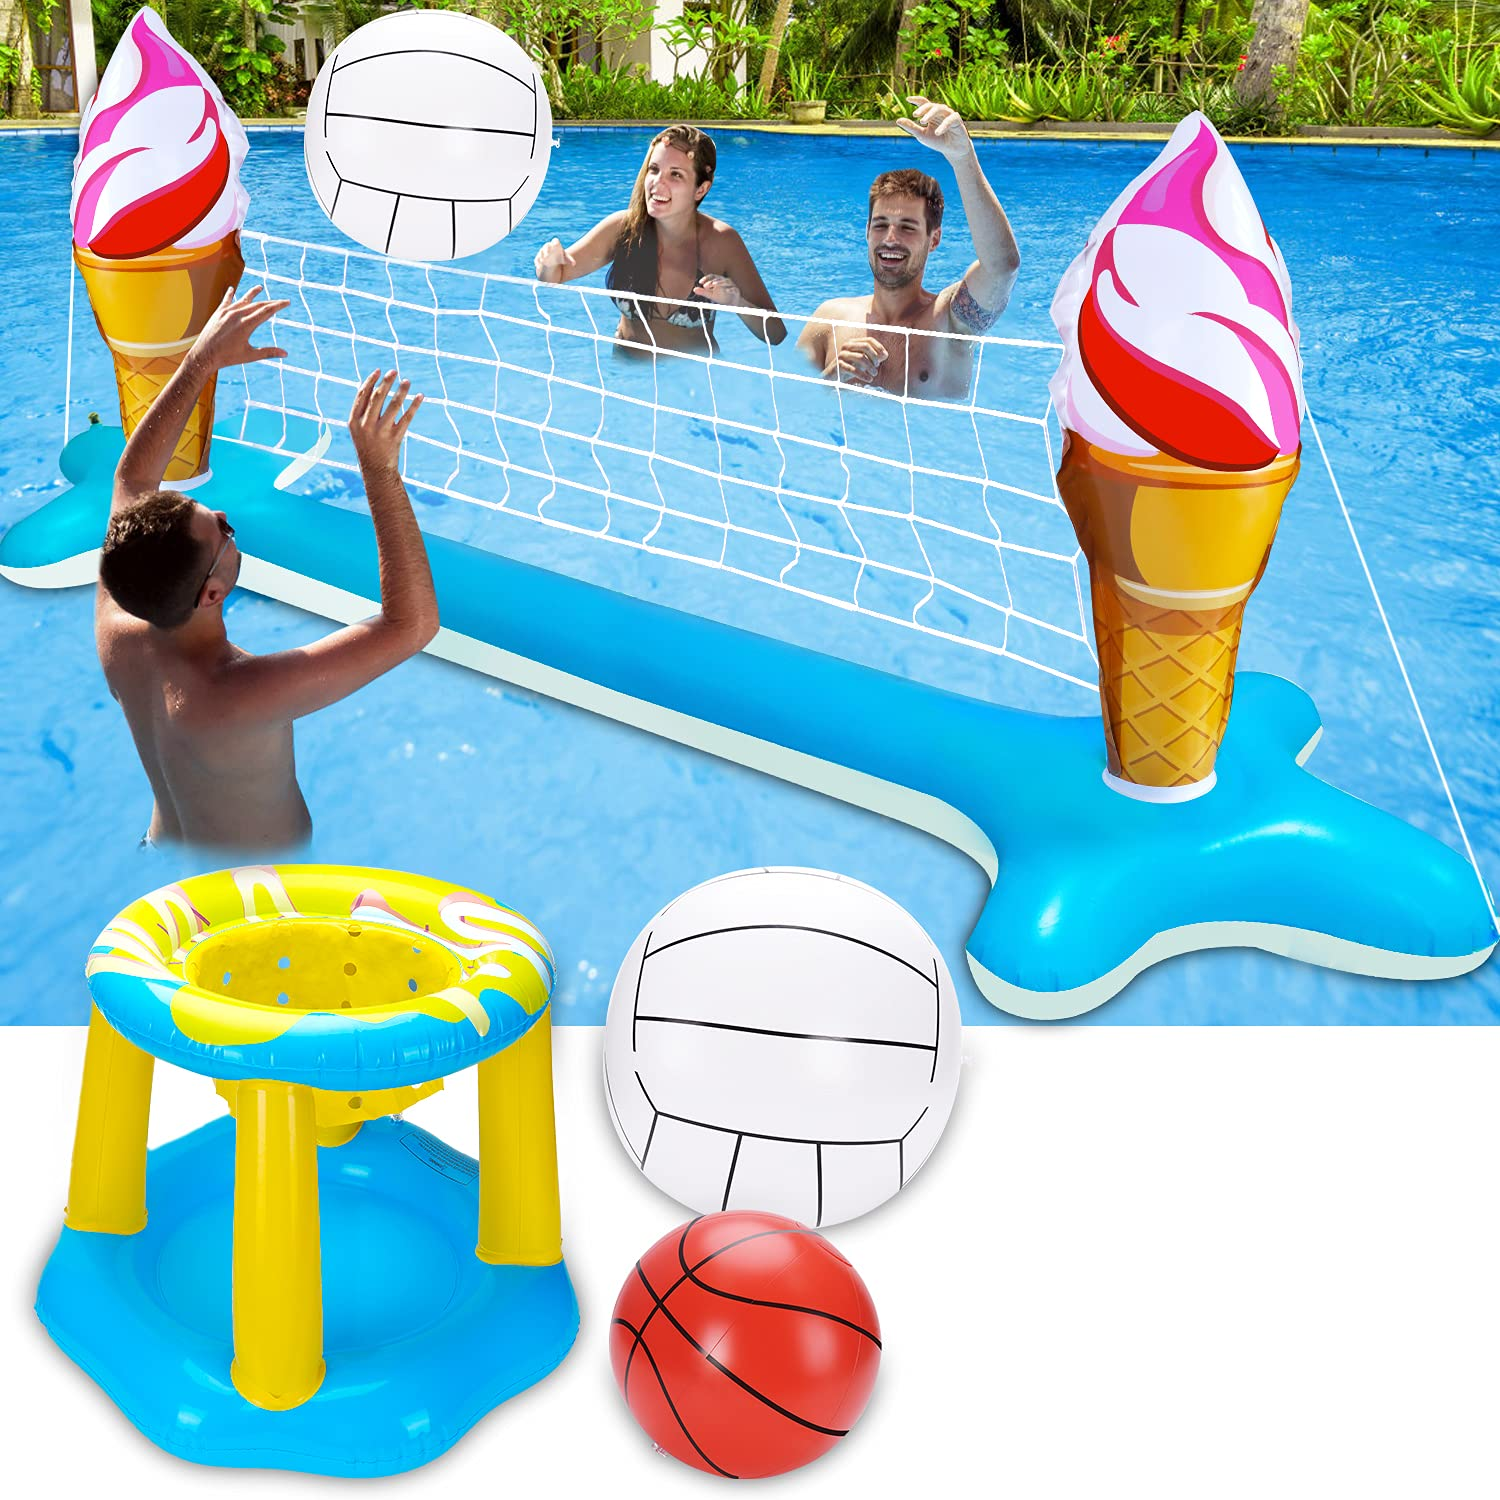 Inflatable Pool Volleyball Net Set Basketball Hoop with 2 Balls Large Size